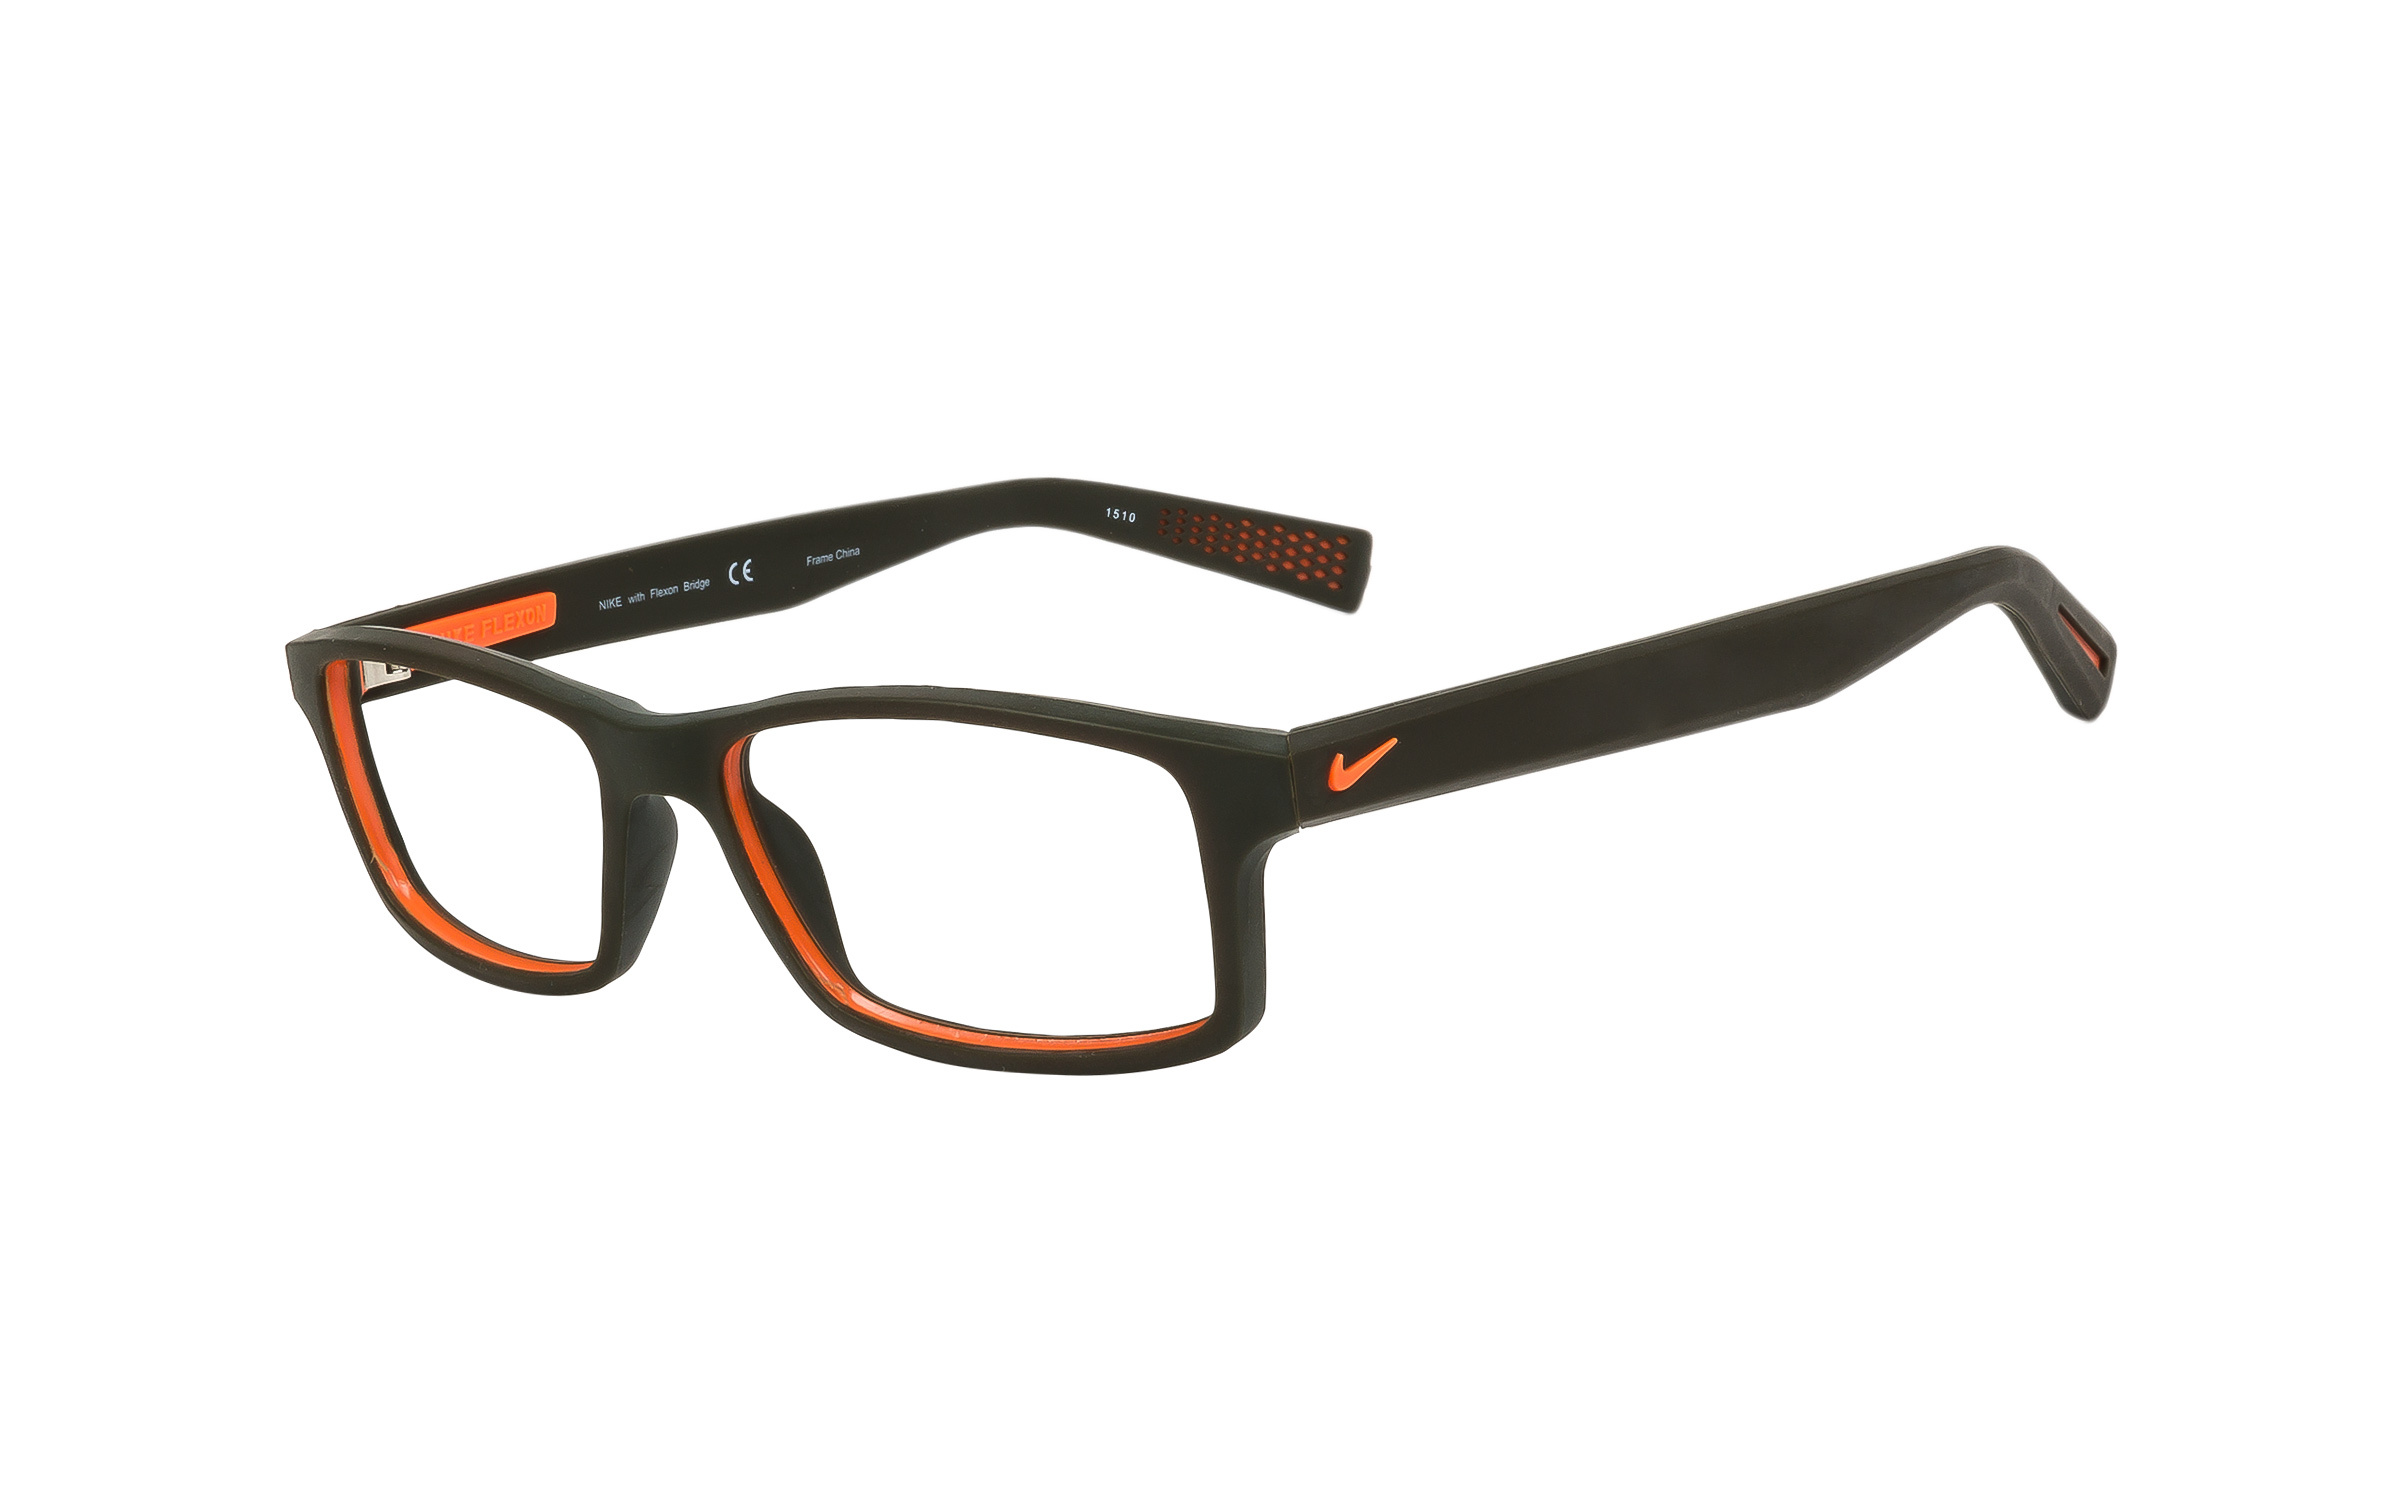 Shop Confidently For Nike 4259 52 Glasses Online With